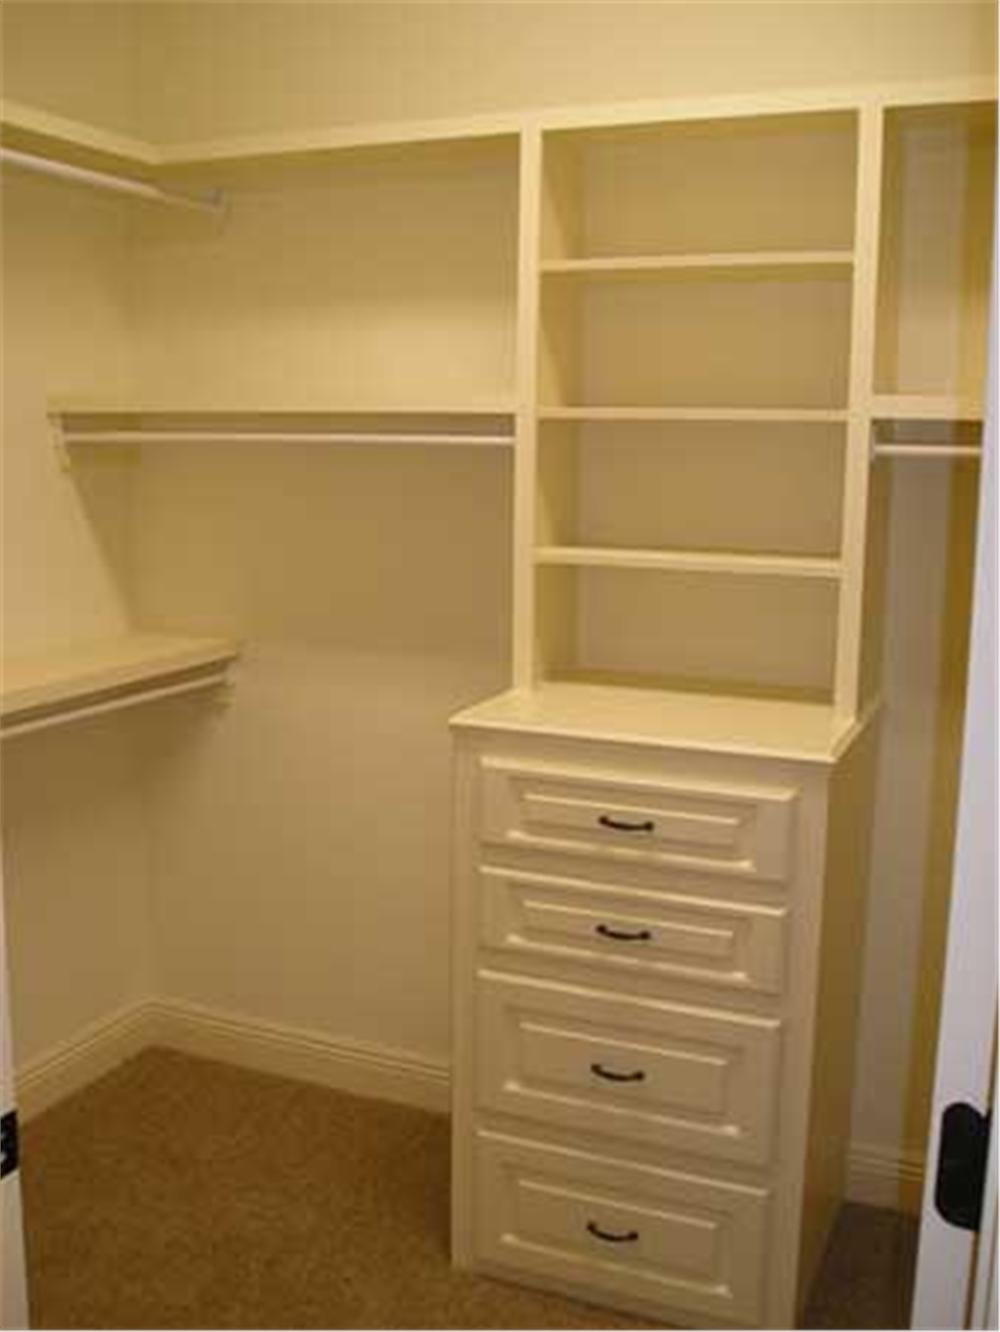 Small house plan home plan 142 - 1 Install Extra Shelves